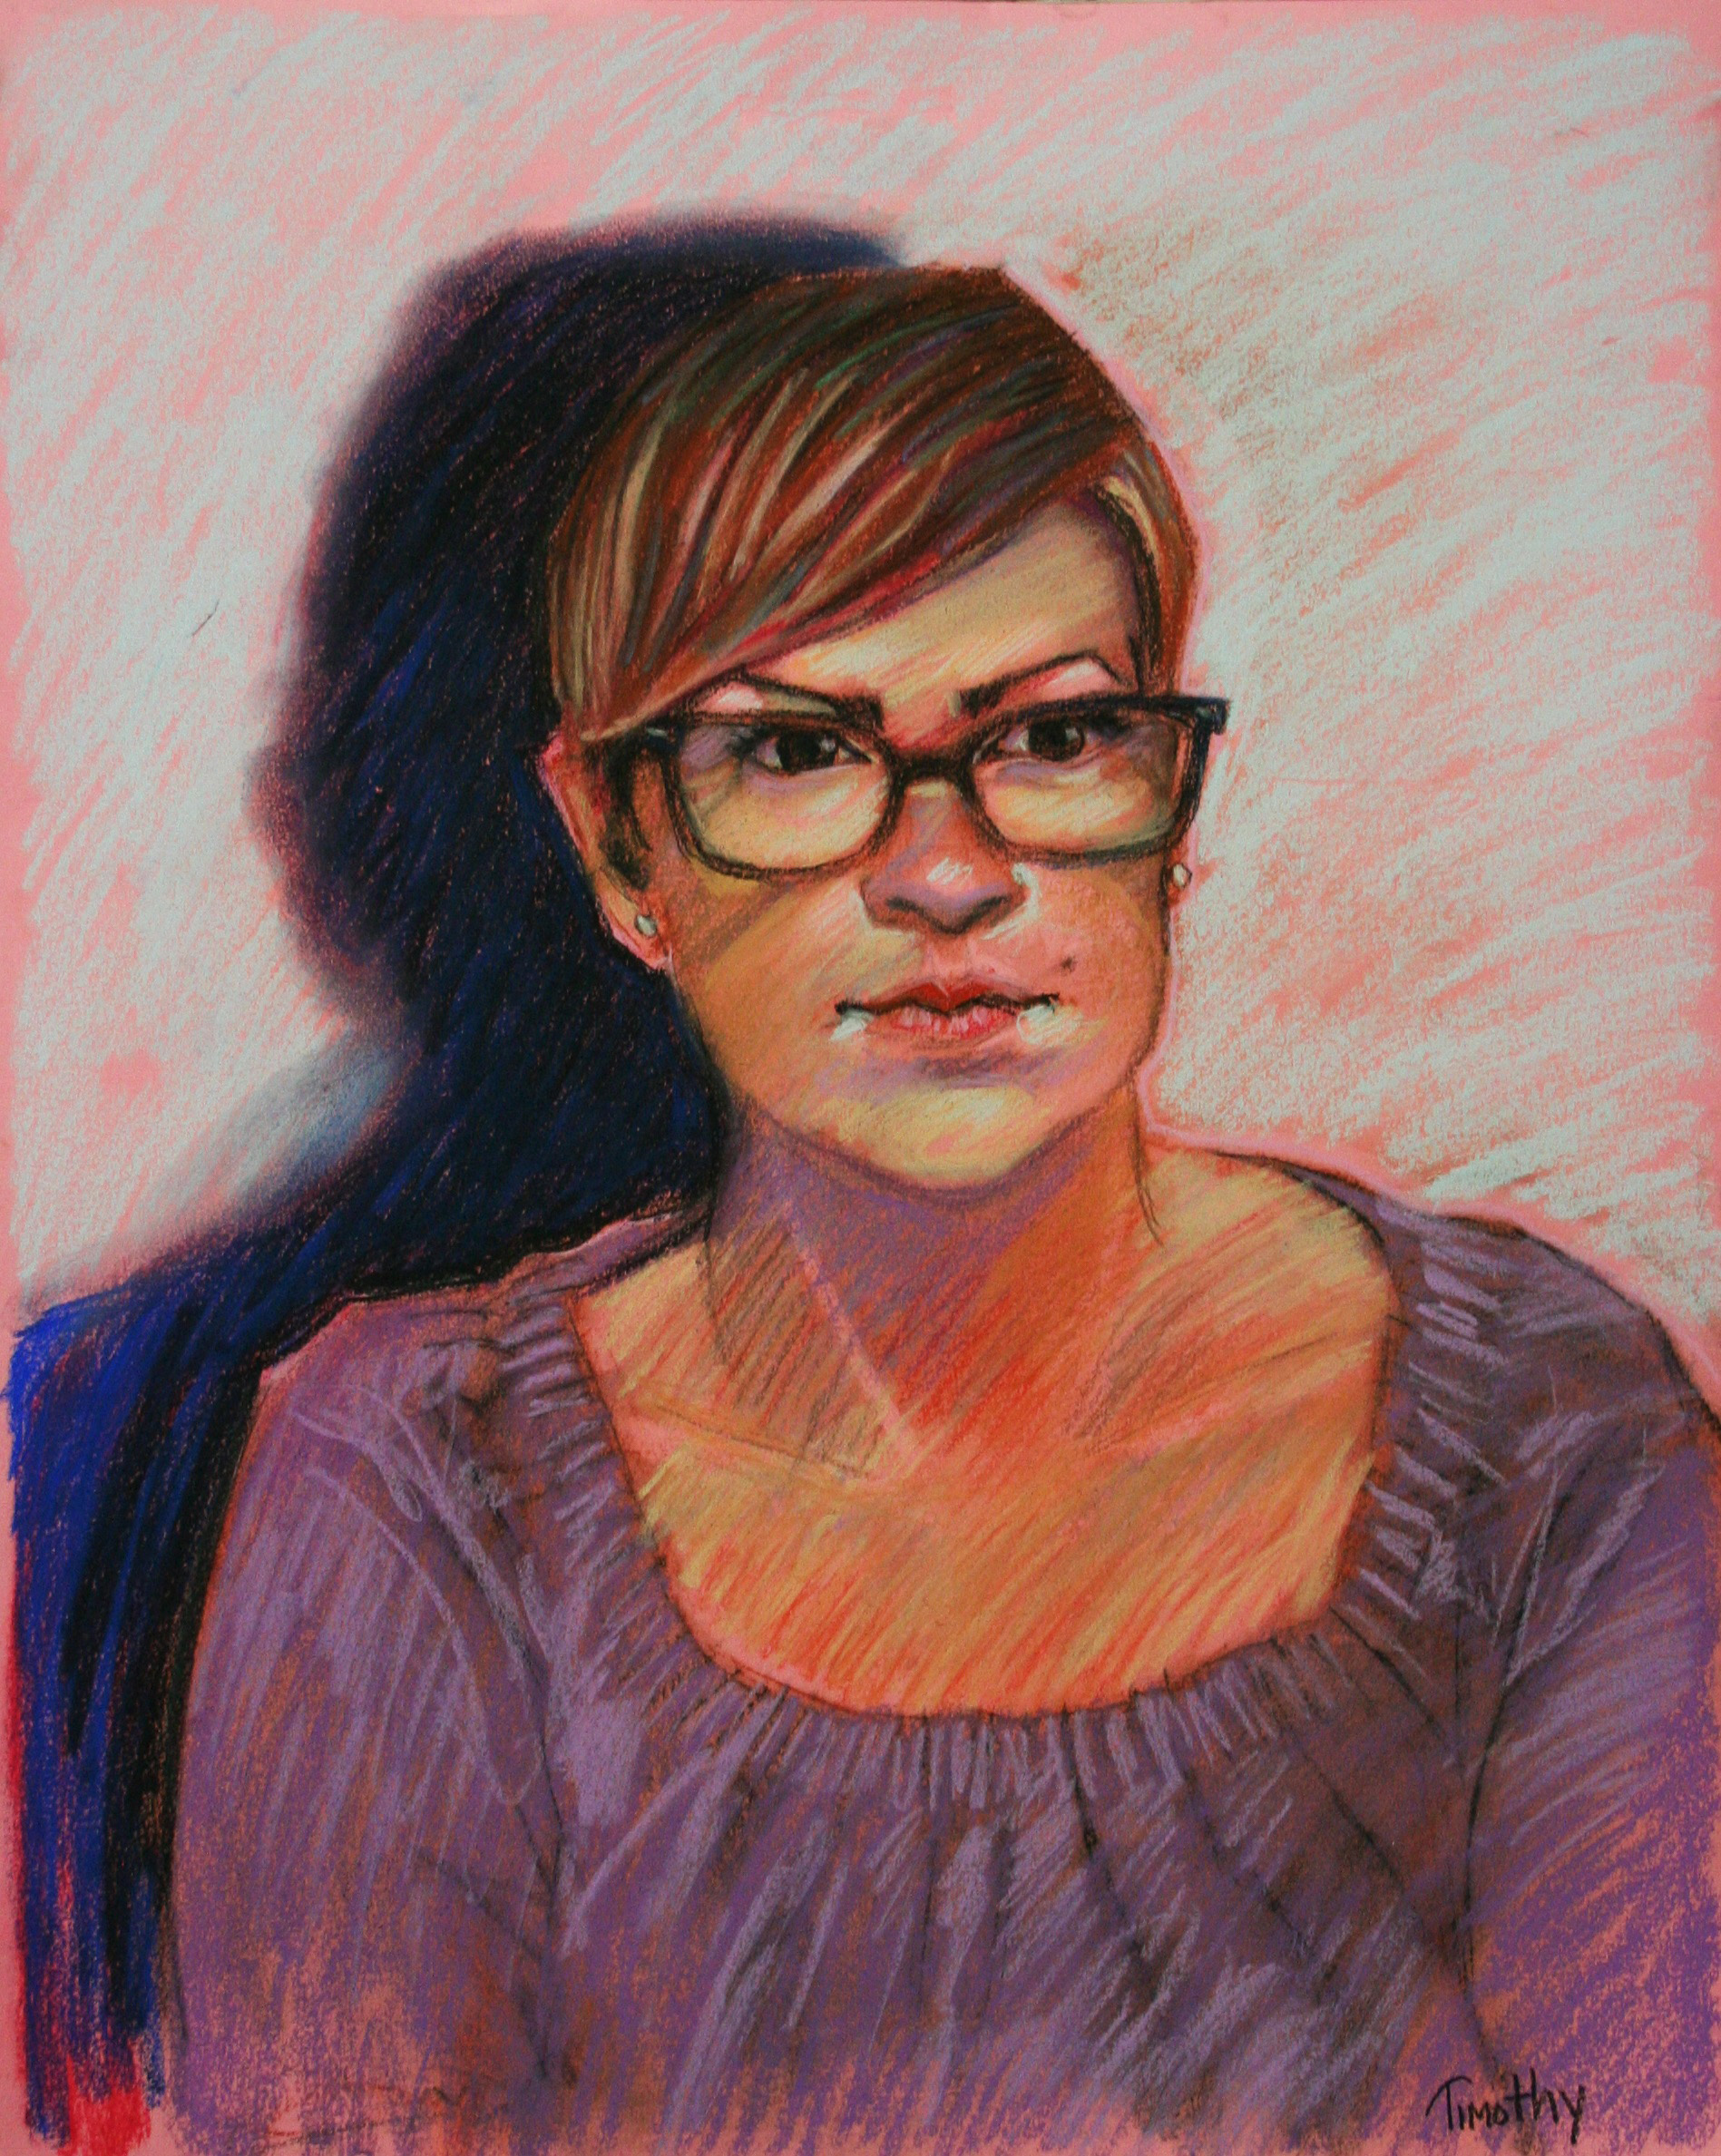 Timothy Herron did this 3-hour pastel drawing.